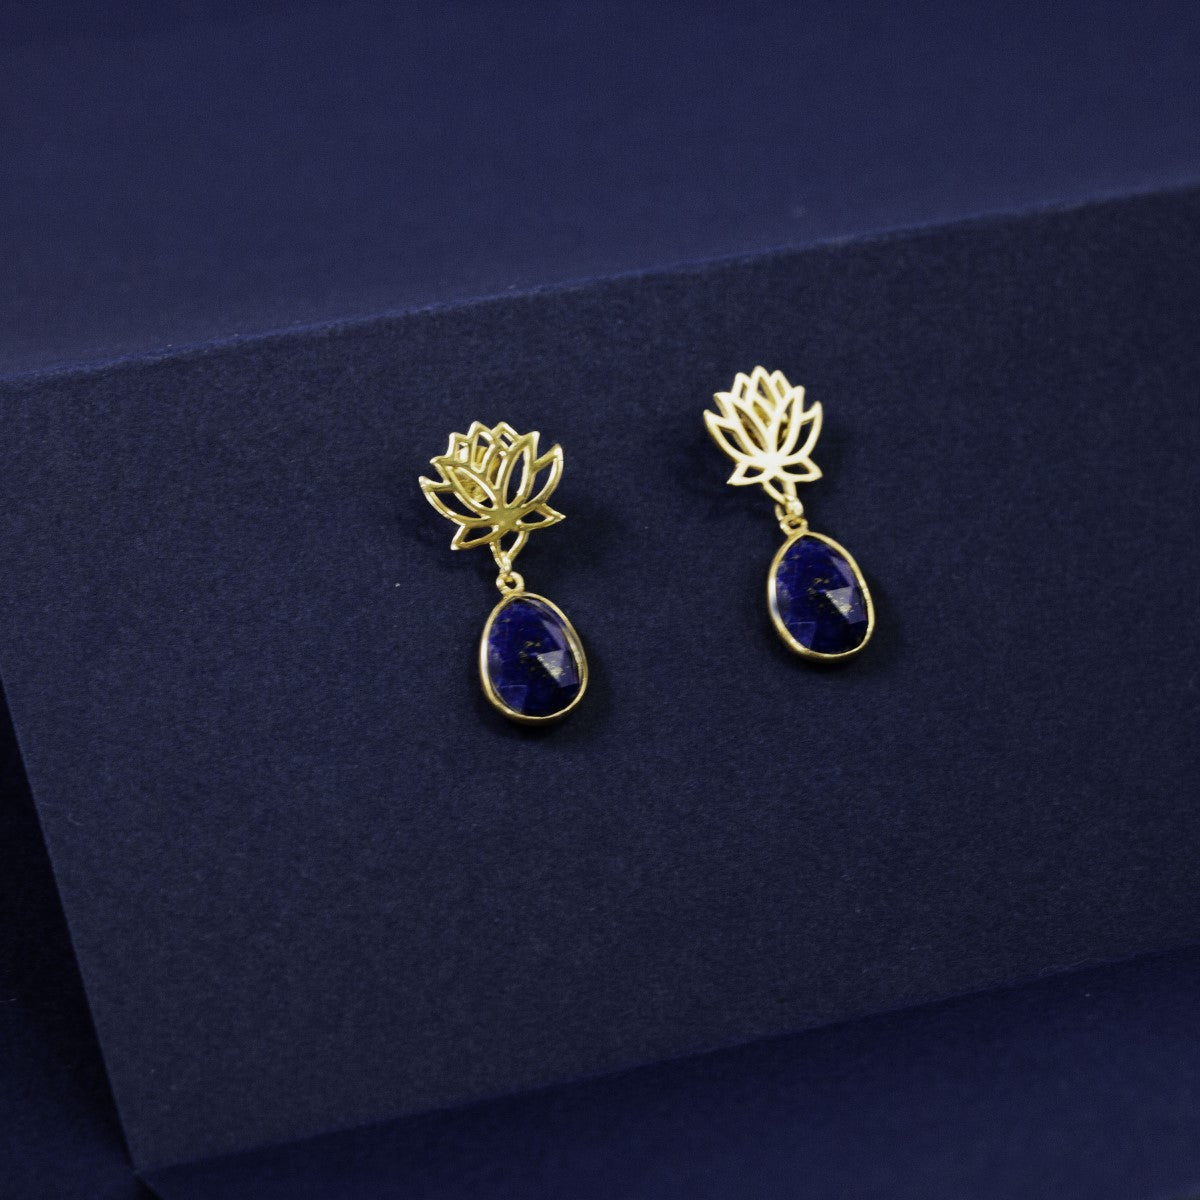 Lotus Earrings in Gold Plated Sterling Silver with a Lapis Lazuli Gemstone Drop